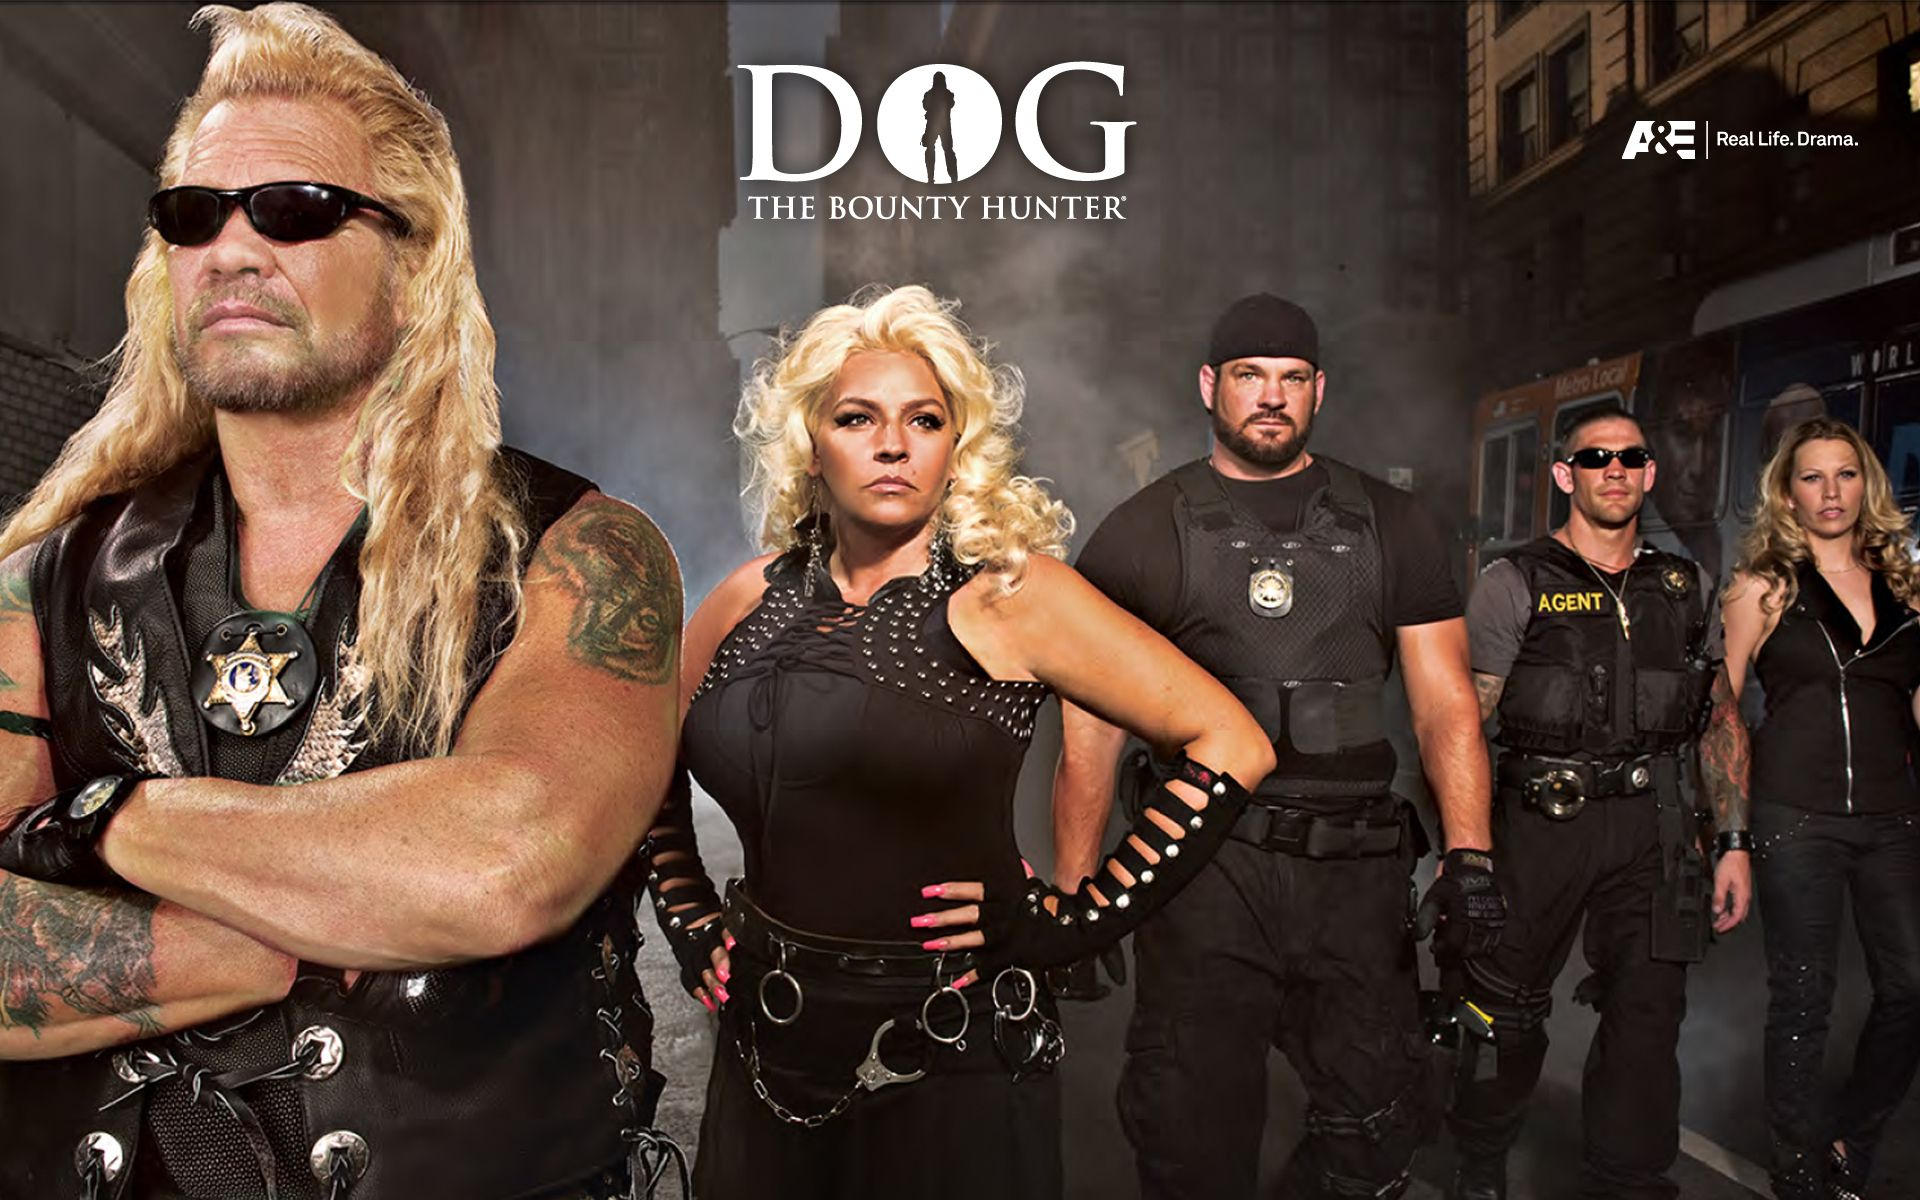 Watch Dog The Bounty Hunter Online Free